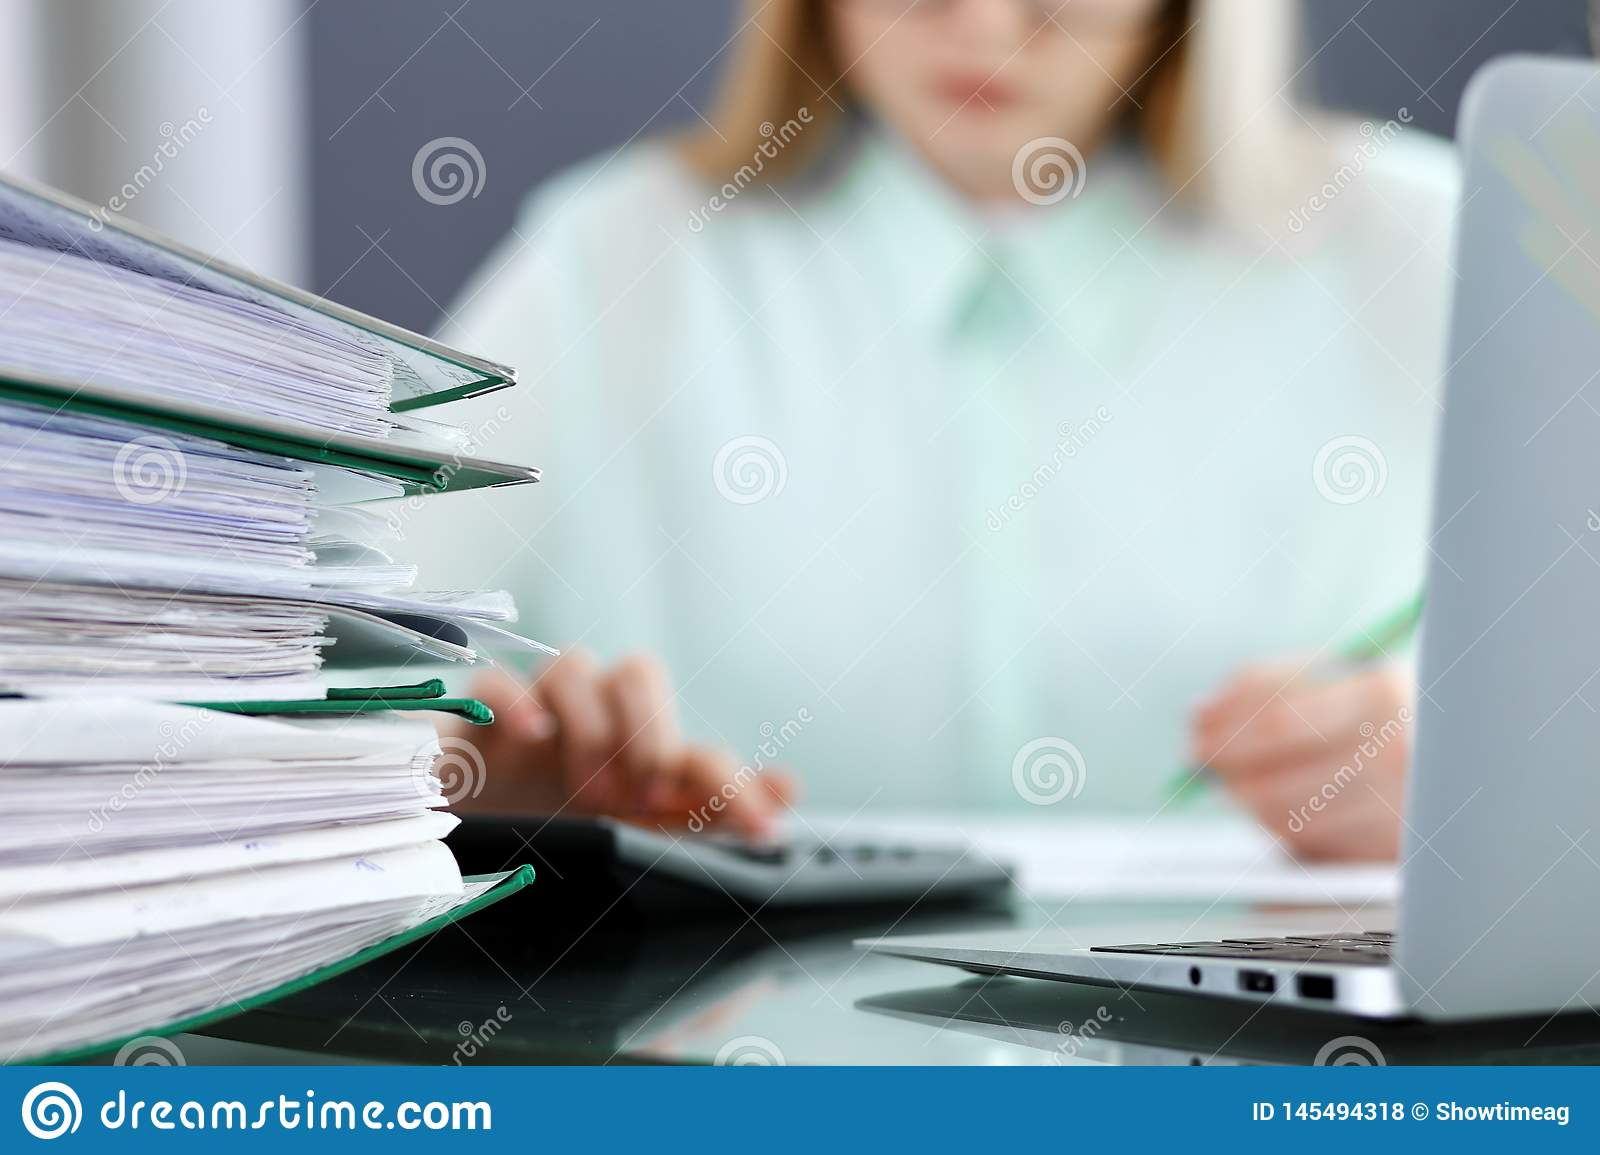 Bookkeeper or financial inspector making report, calculating or checking balance. Audit and tax service concept. Green